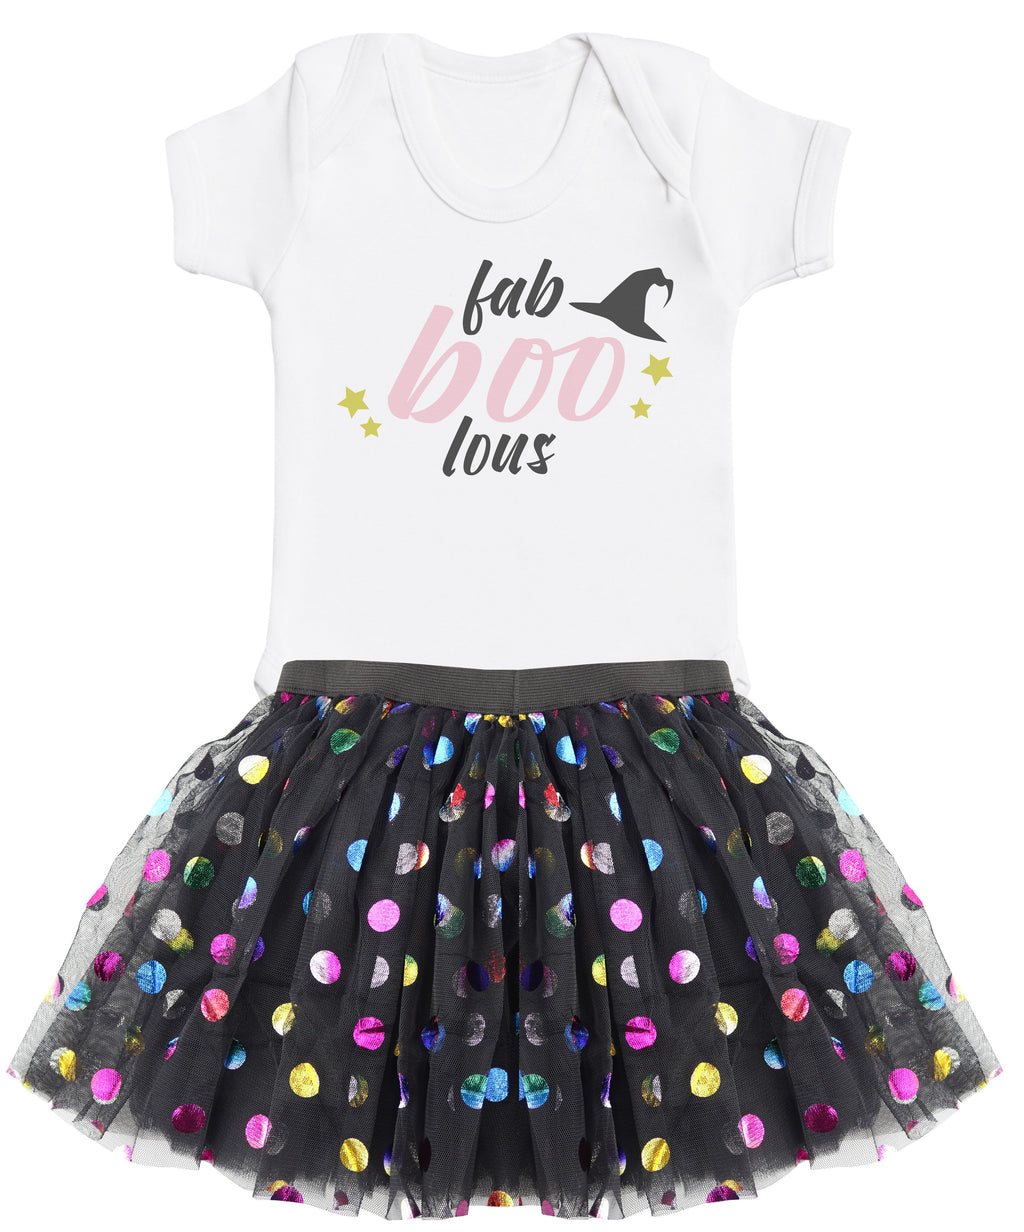 Fab-boo-lous Bodysuit and Rainbow Polka Dot Tutu Set